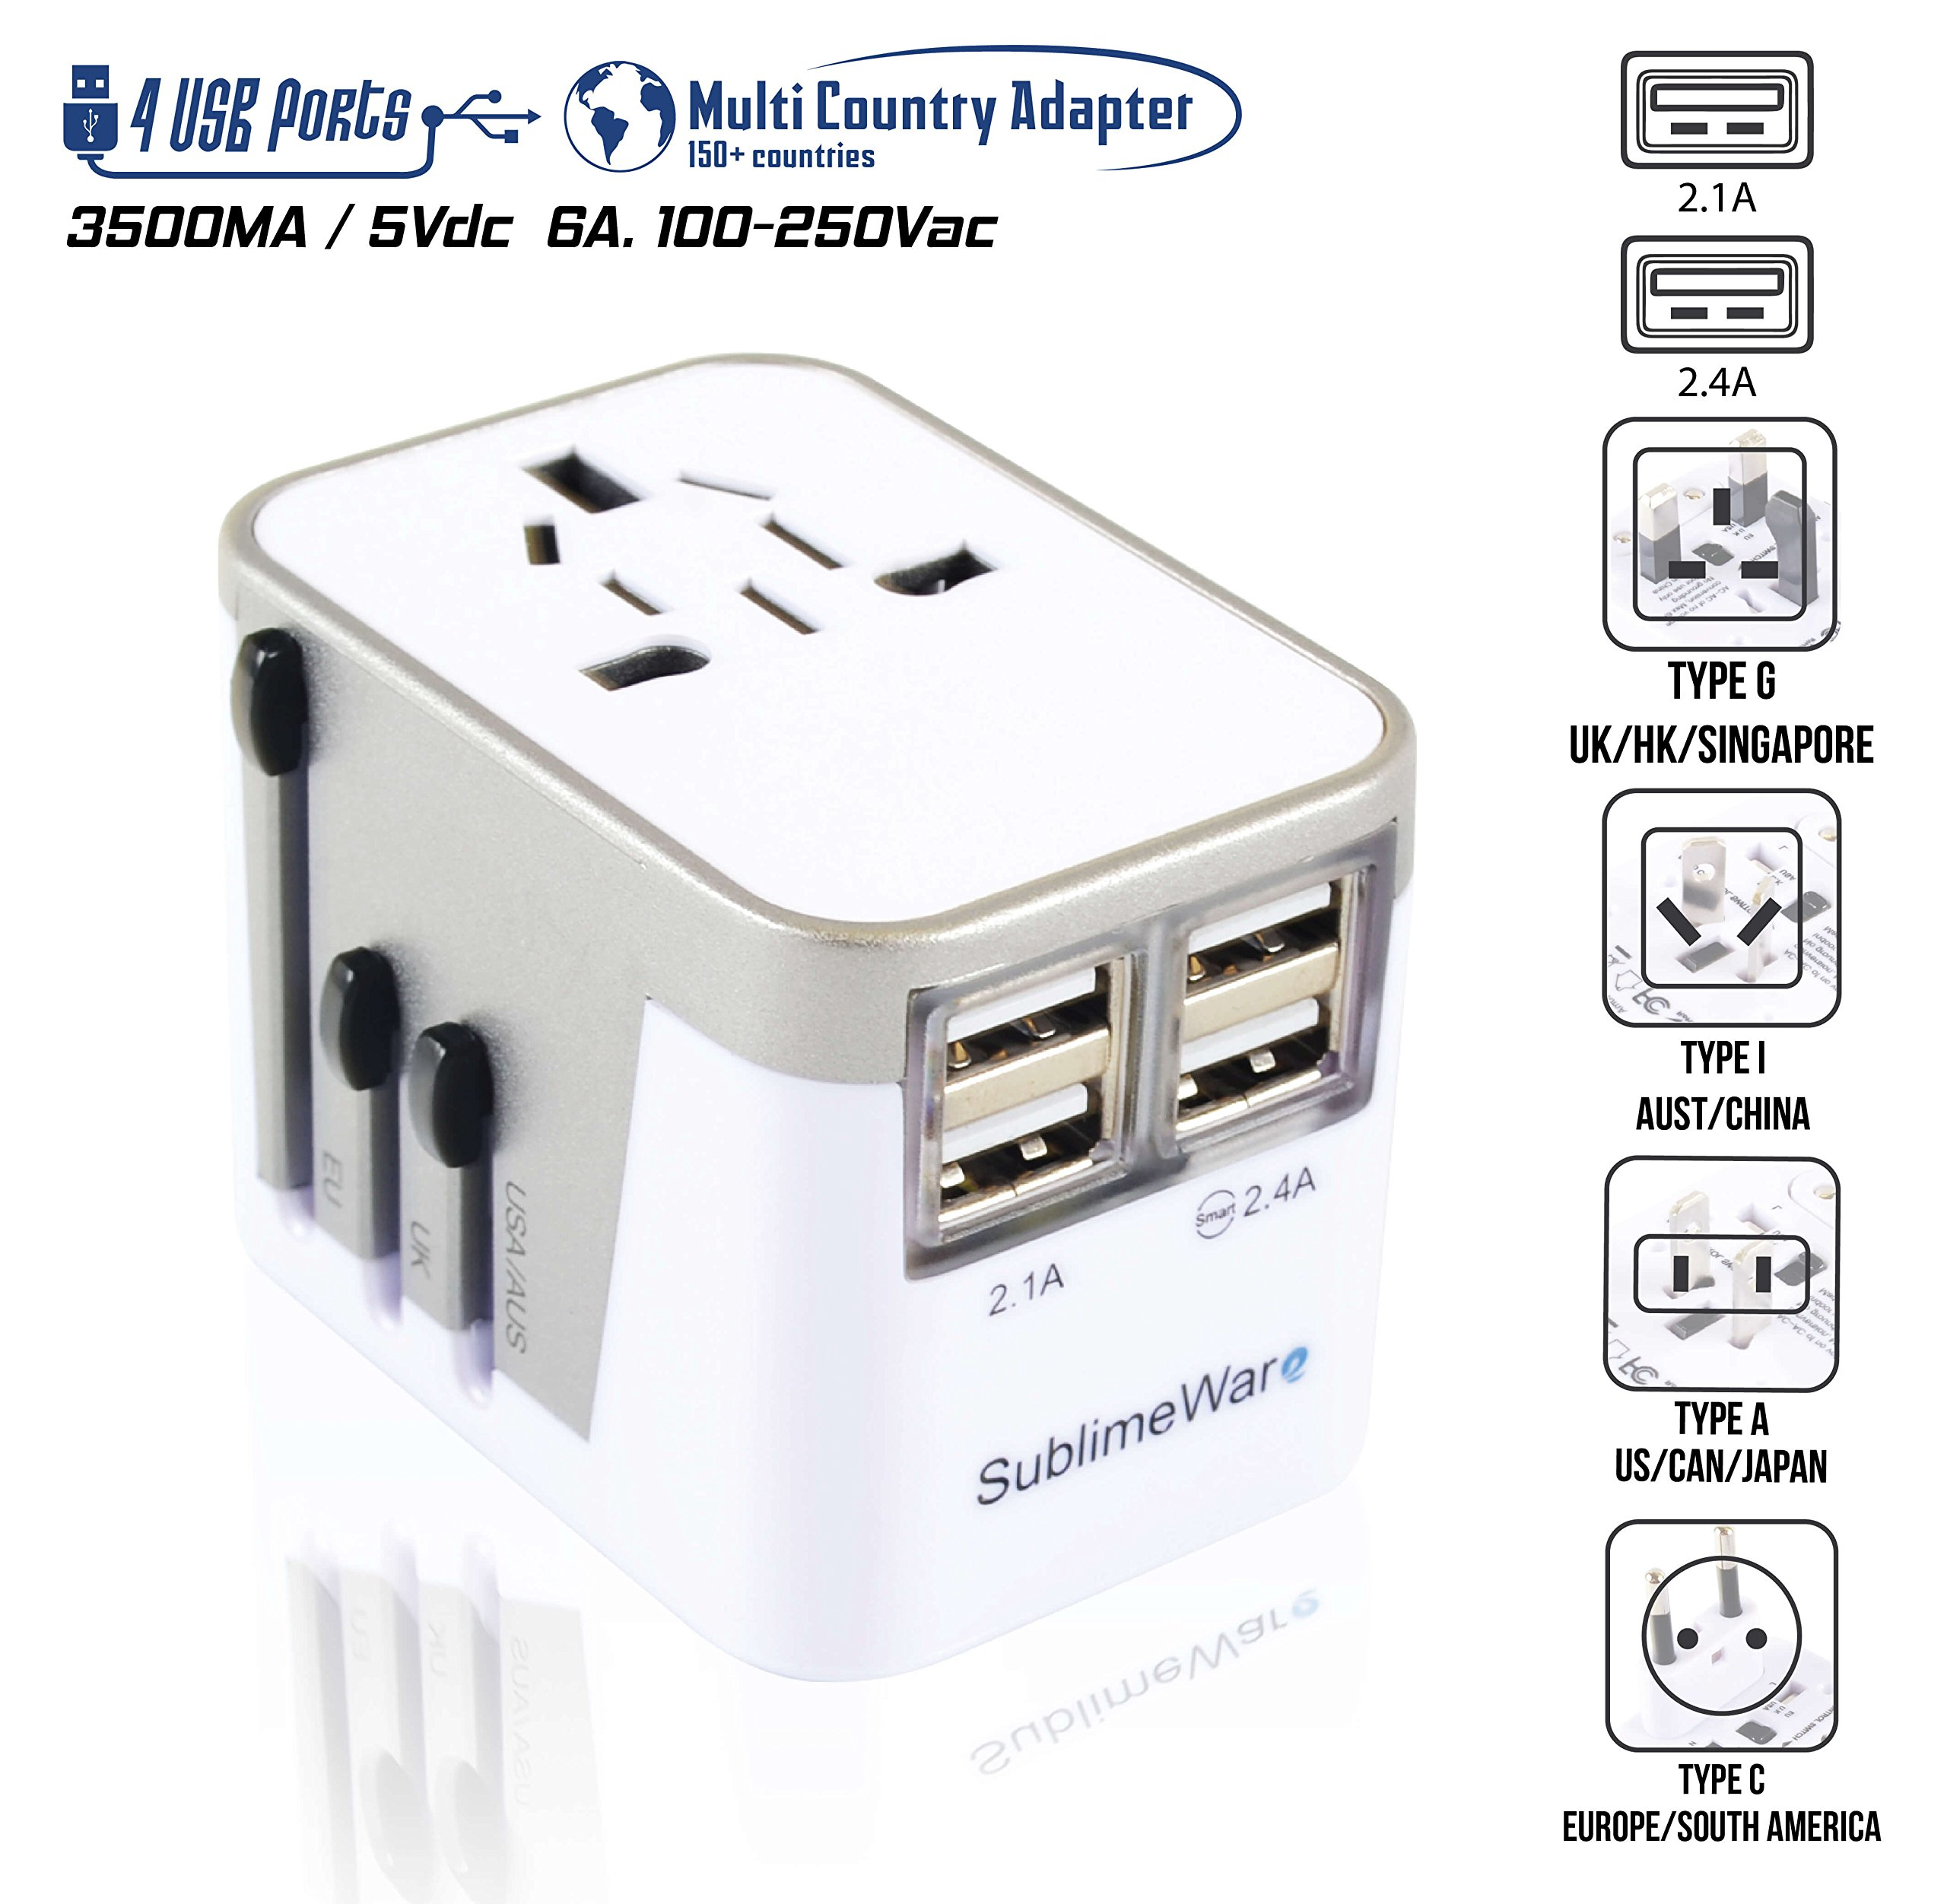 Power Plug Adapter - International Travel - w/USB Ports Work for 150+ Countries - 220 Volt Adapter - Travel Adapter Type C Type A Type G Type I f for UK Japan China EU Europe European by SublimeWare Price: $17.99